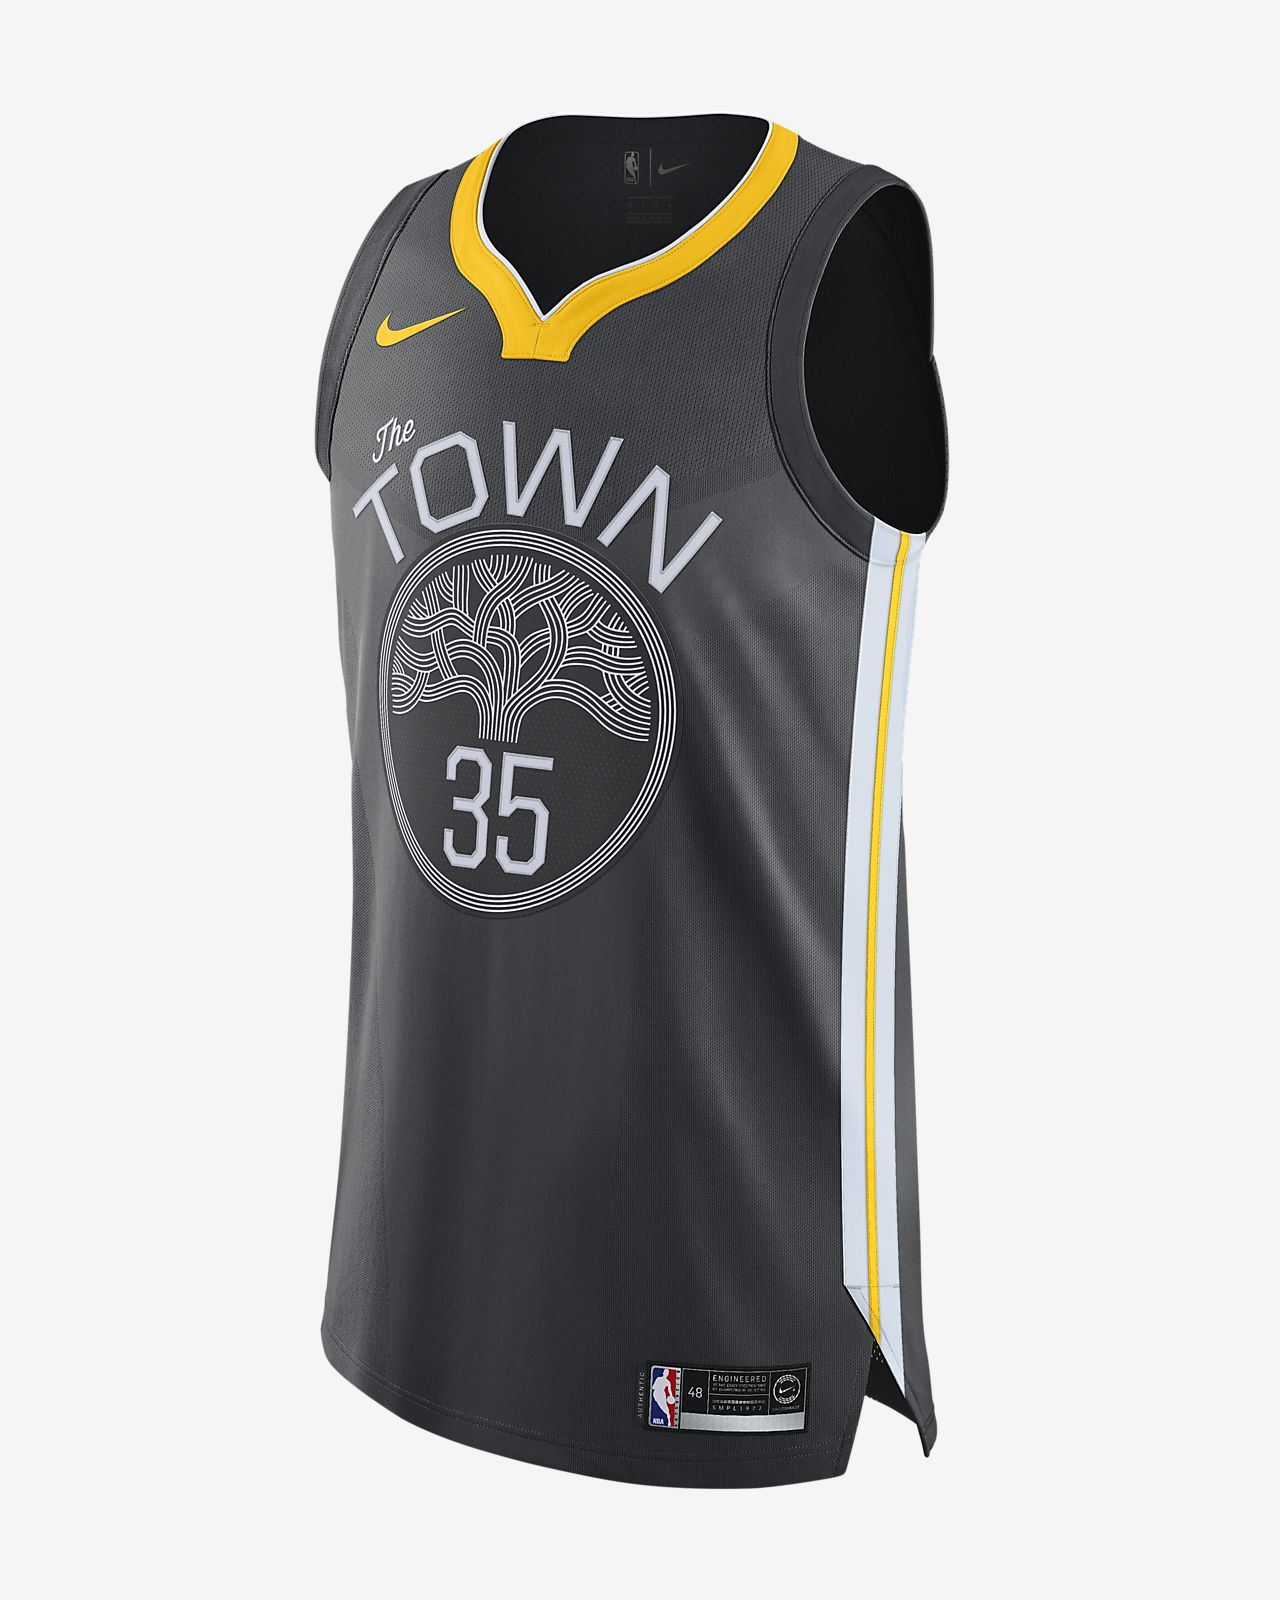 de8edbfdd6f5 Men s Nike NBA Connected Jersey. Kevin Durant Statement Edition Authentic (Golden  State Warriors)